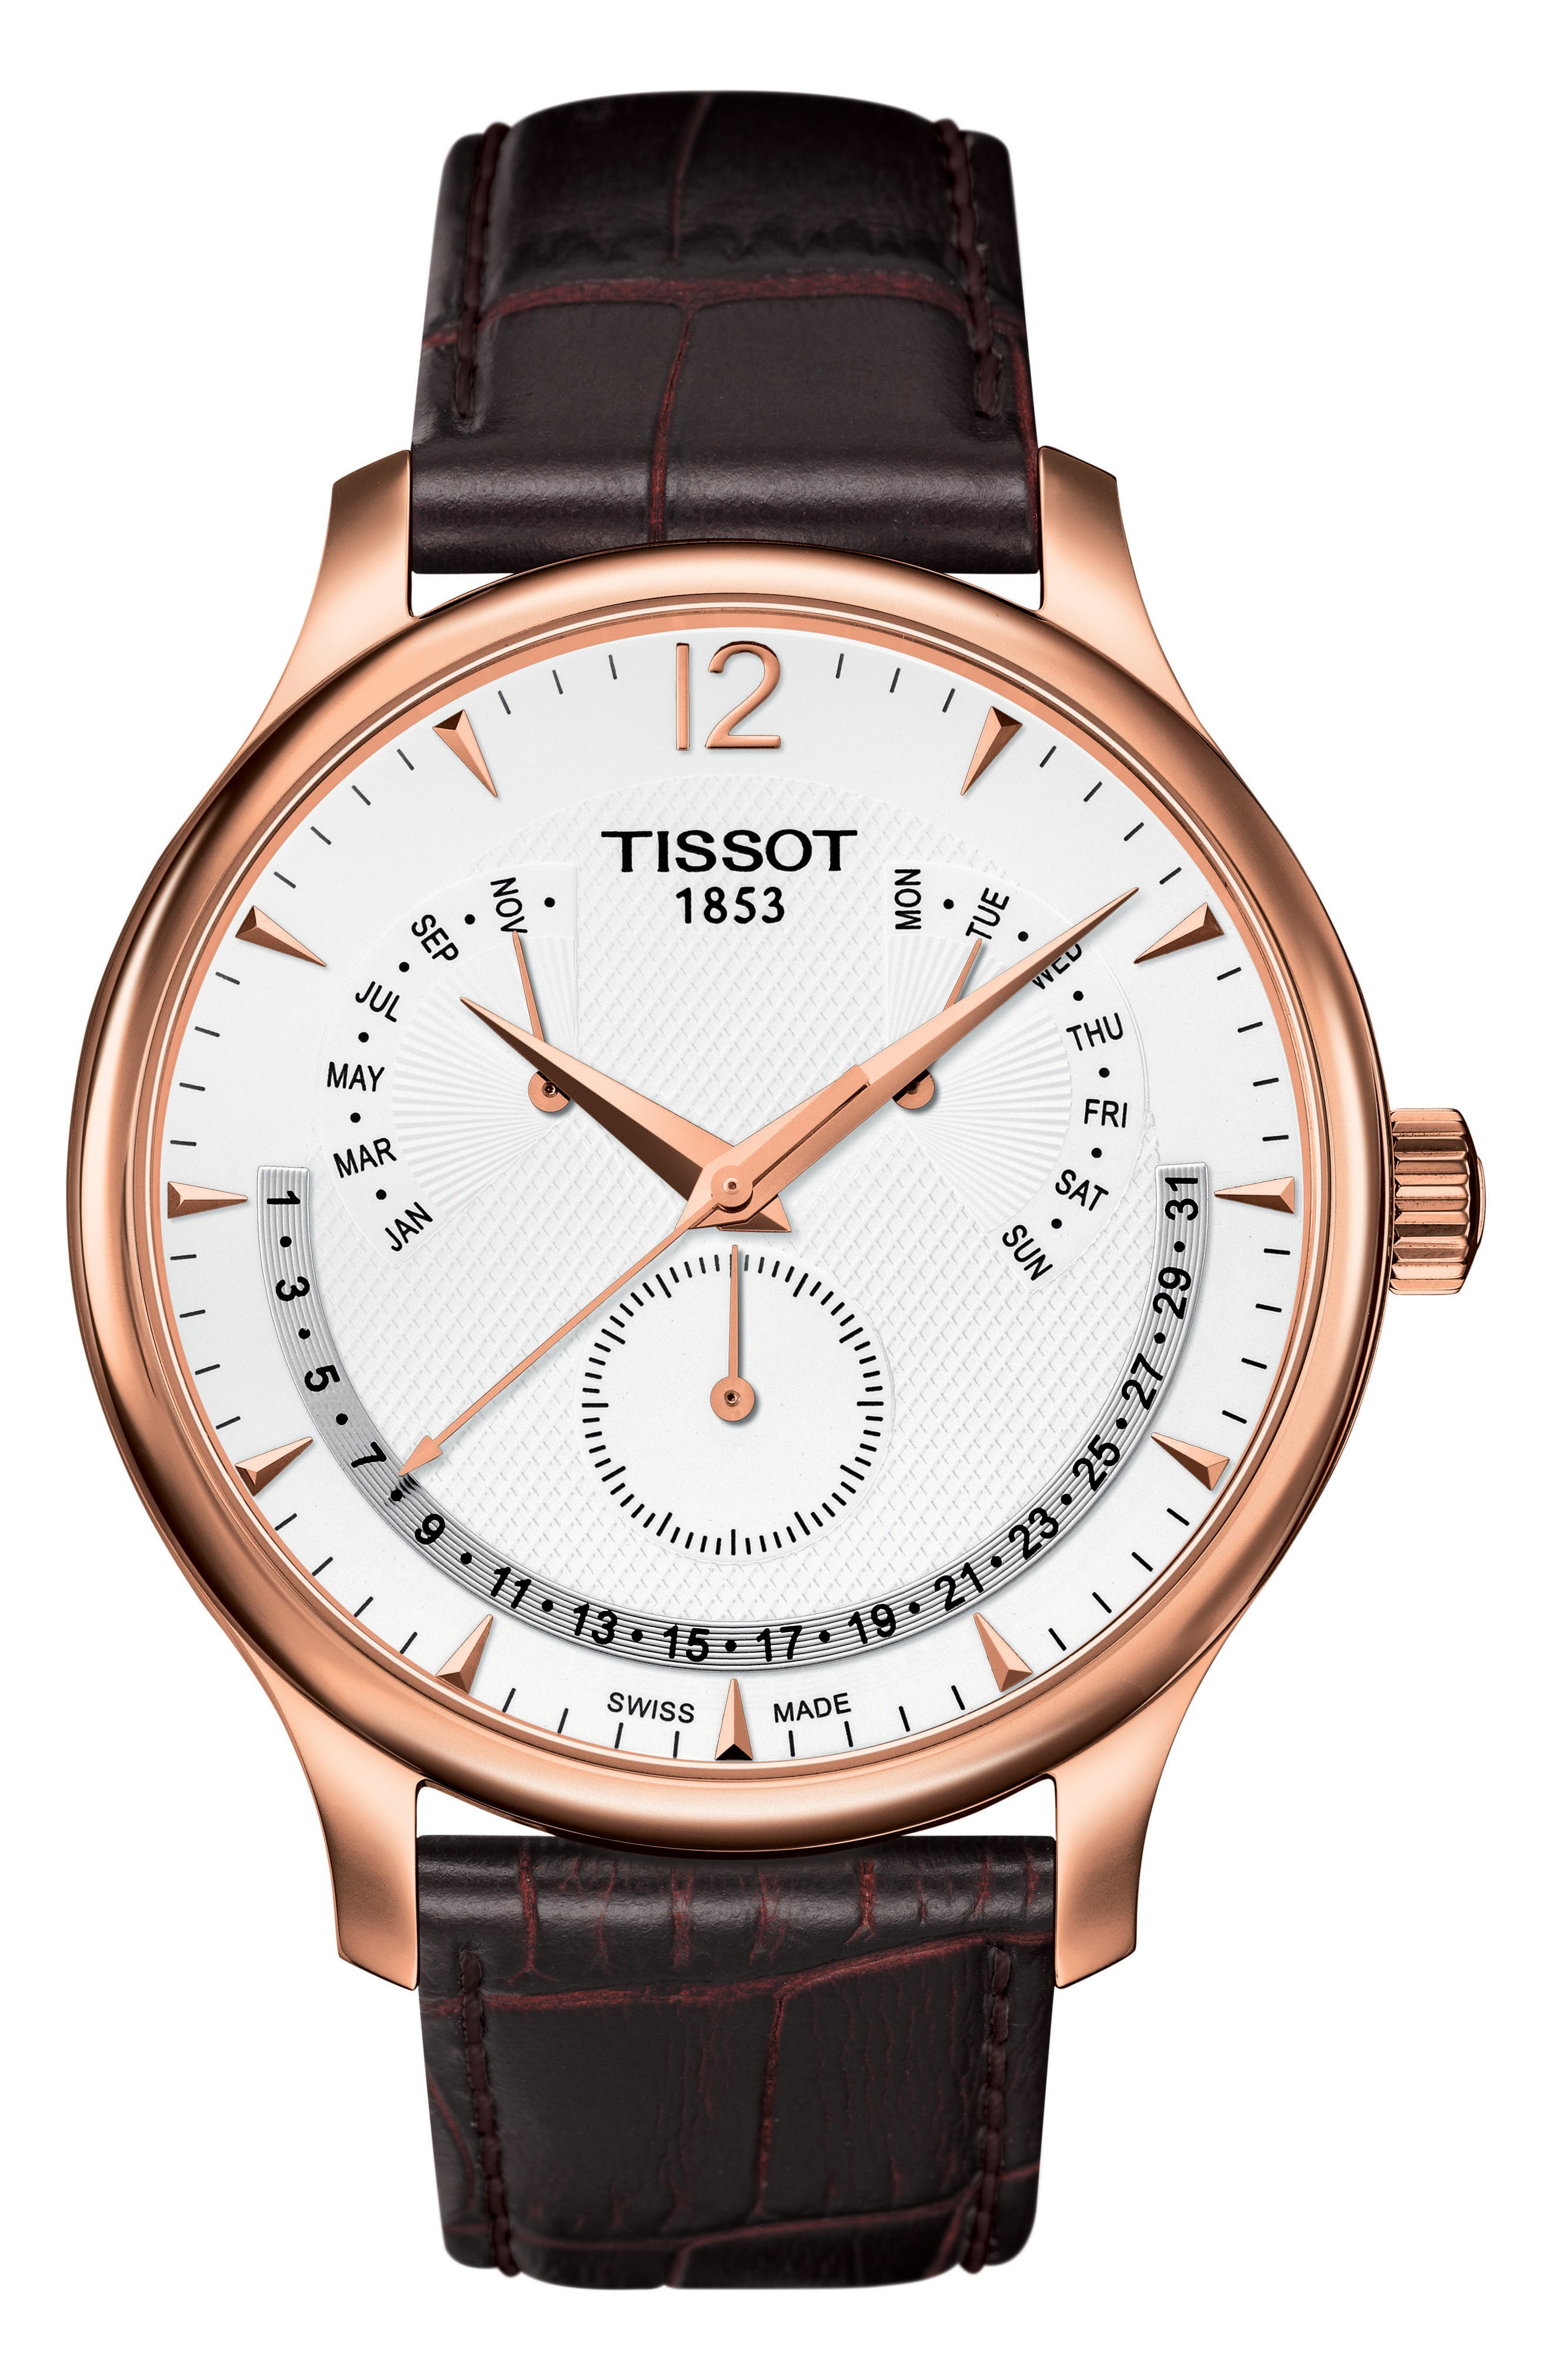 TRADITION CALENDAR LEATHER STRAP WATCH, 42MM